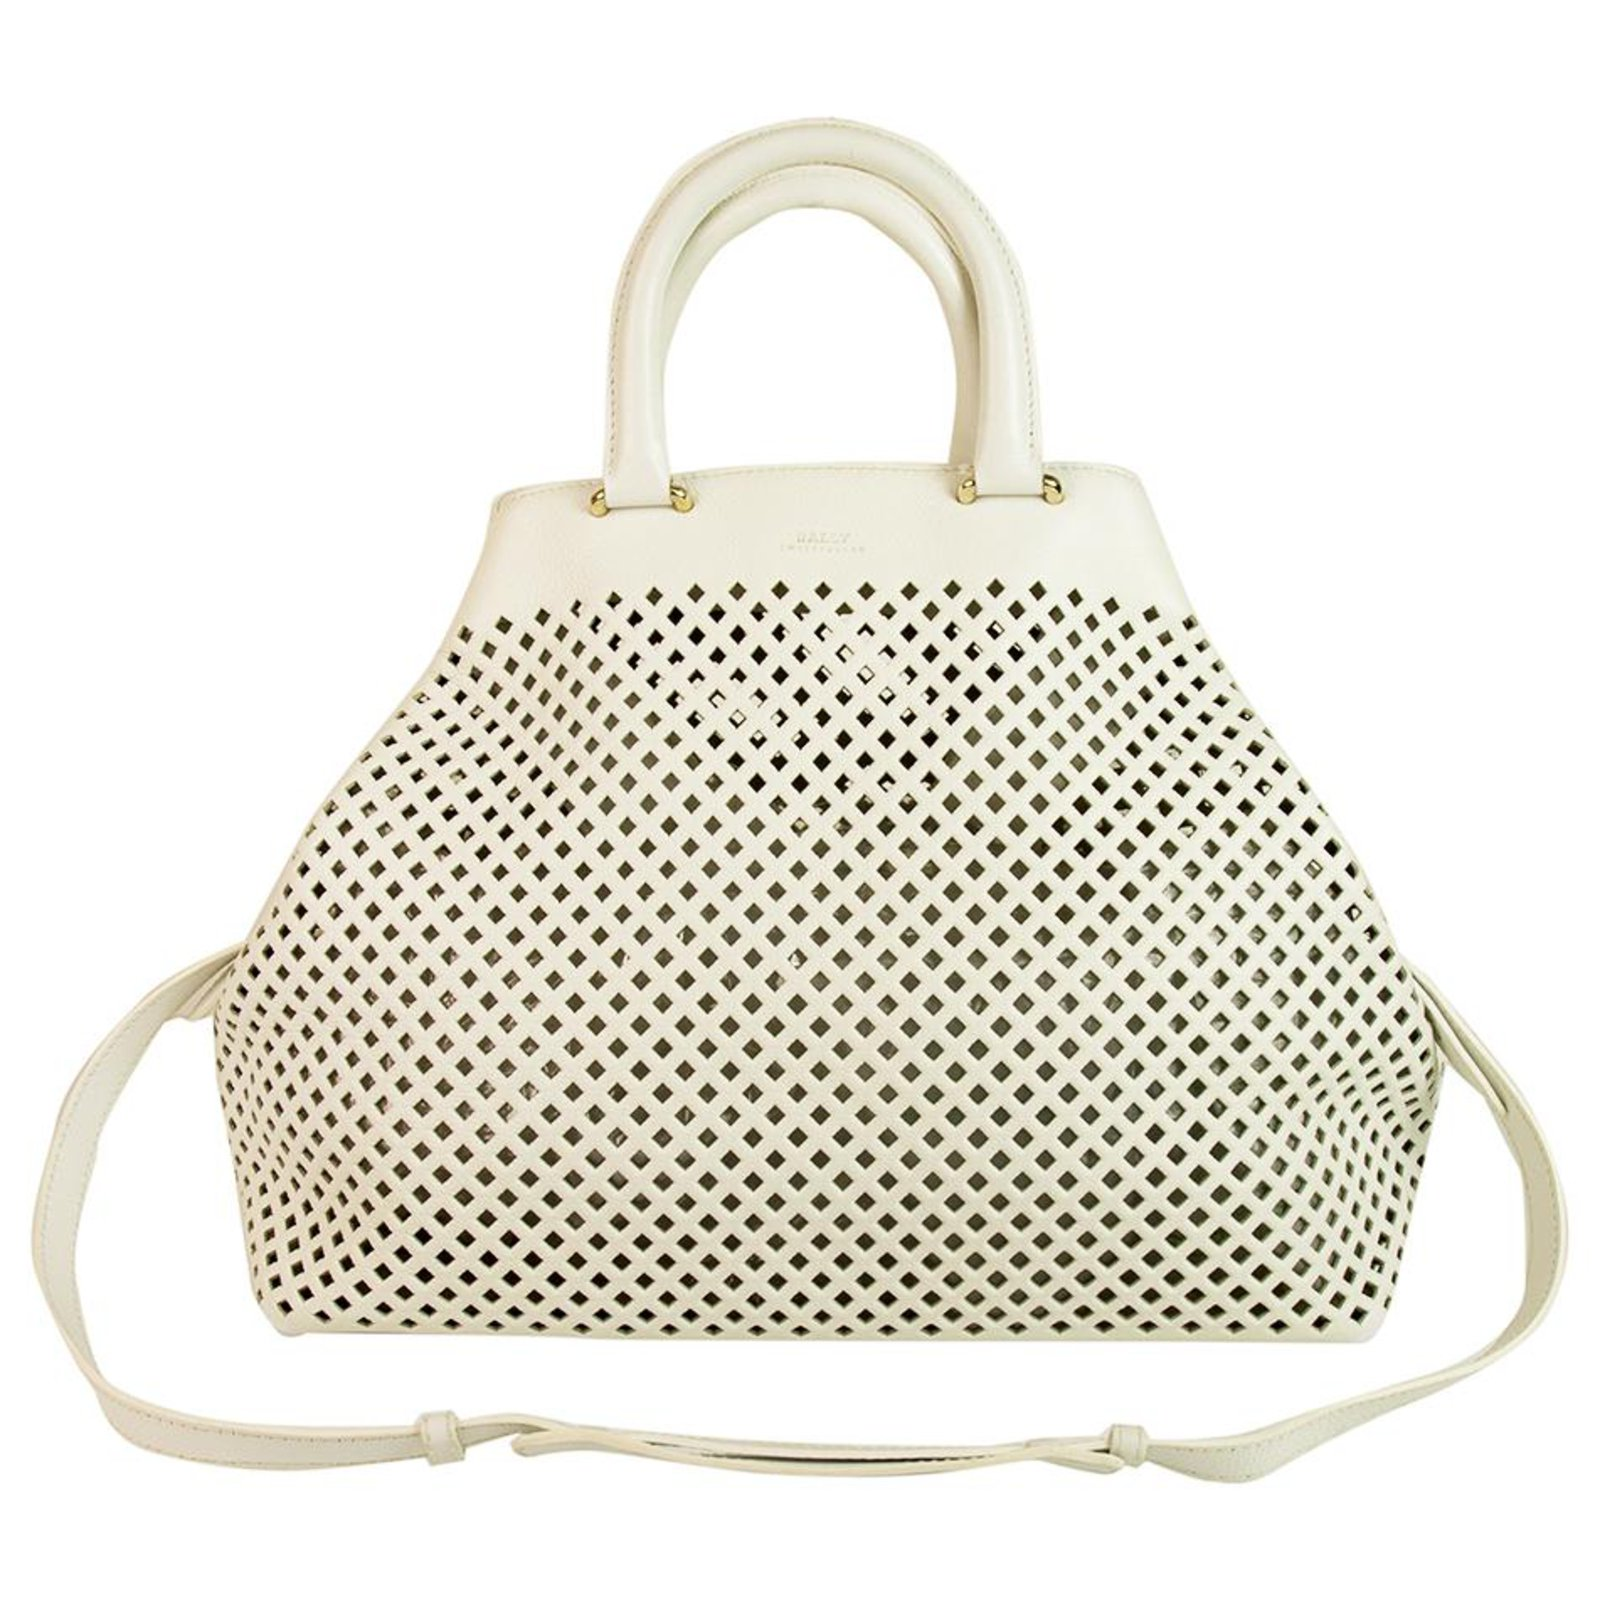 Bally White Perforated Leather